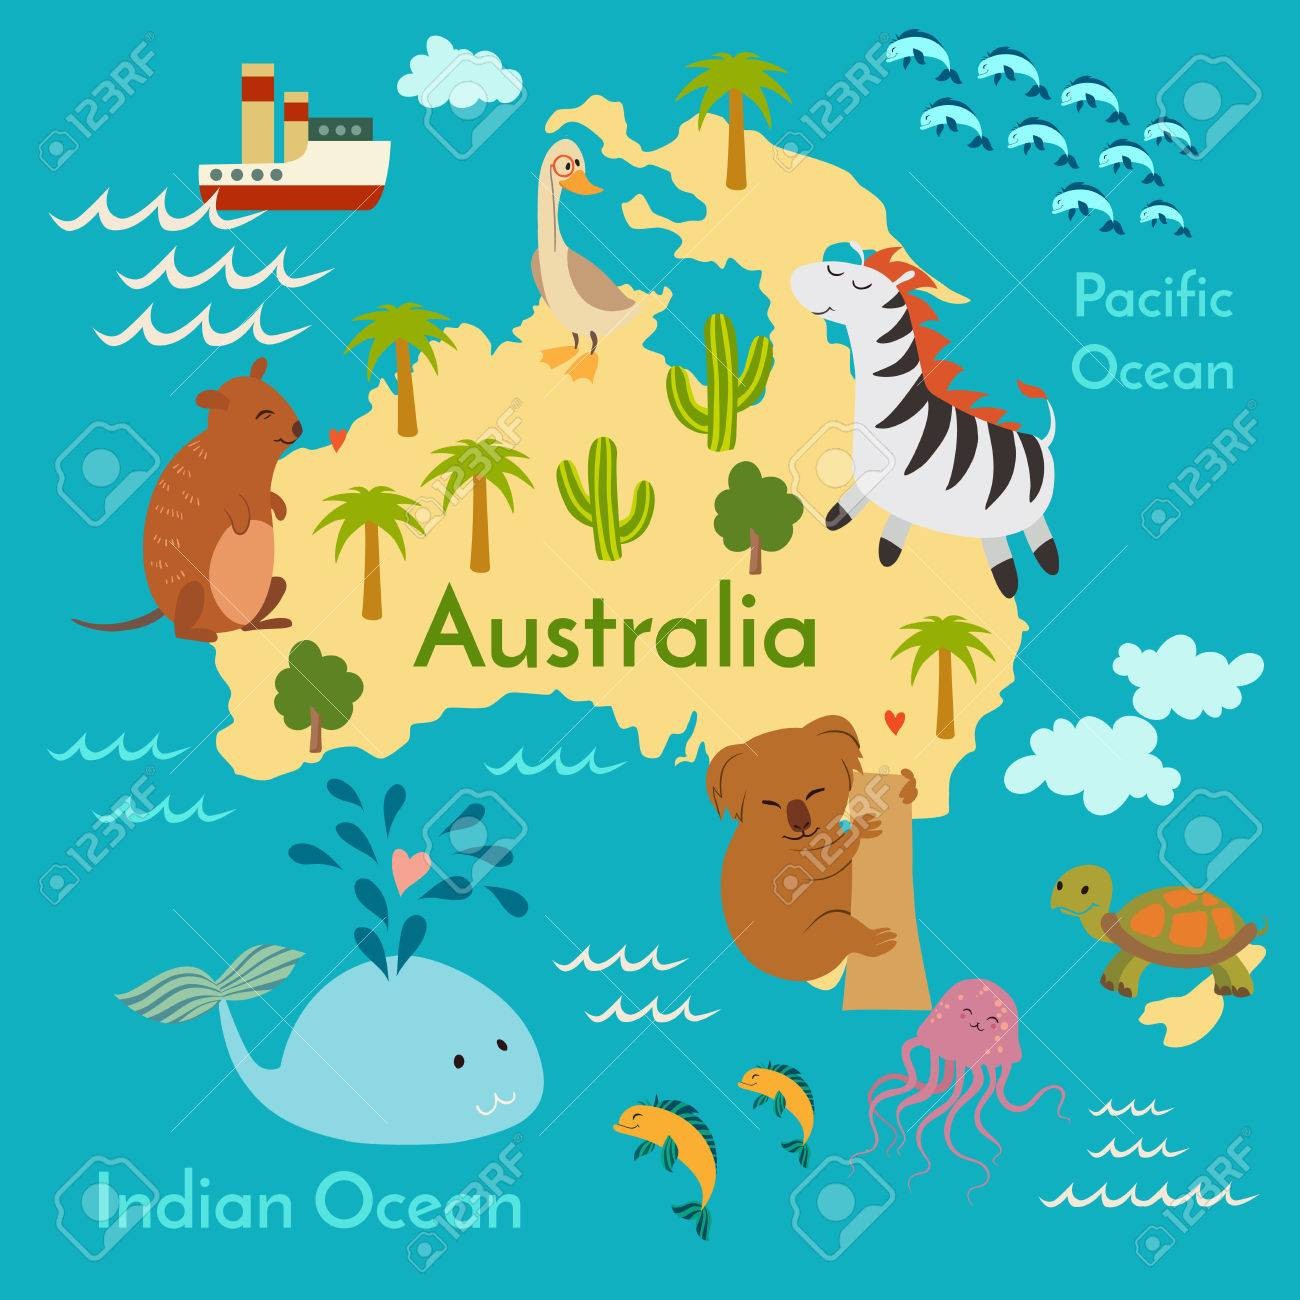 Animals world map australia vector illustration preschool animals world map australia vector illustration preschool baby continents oceans gumiabroncs Image collections